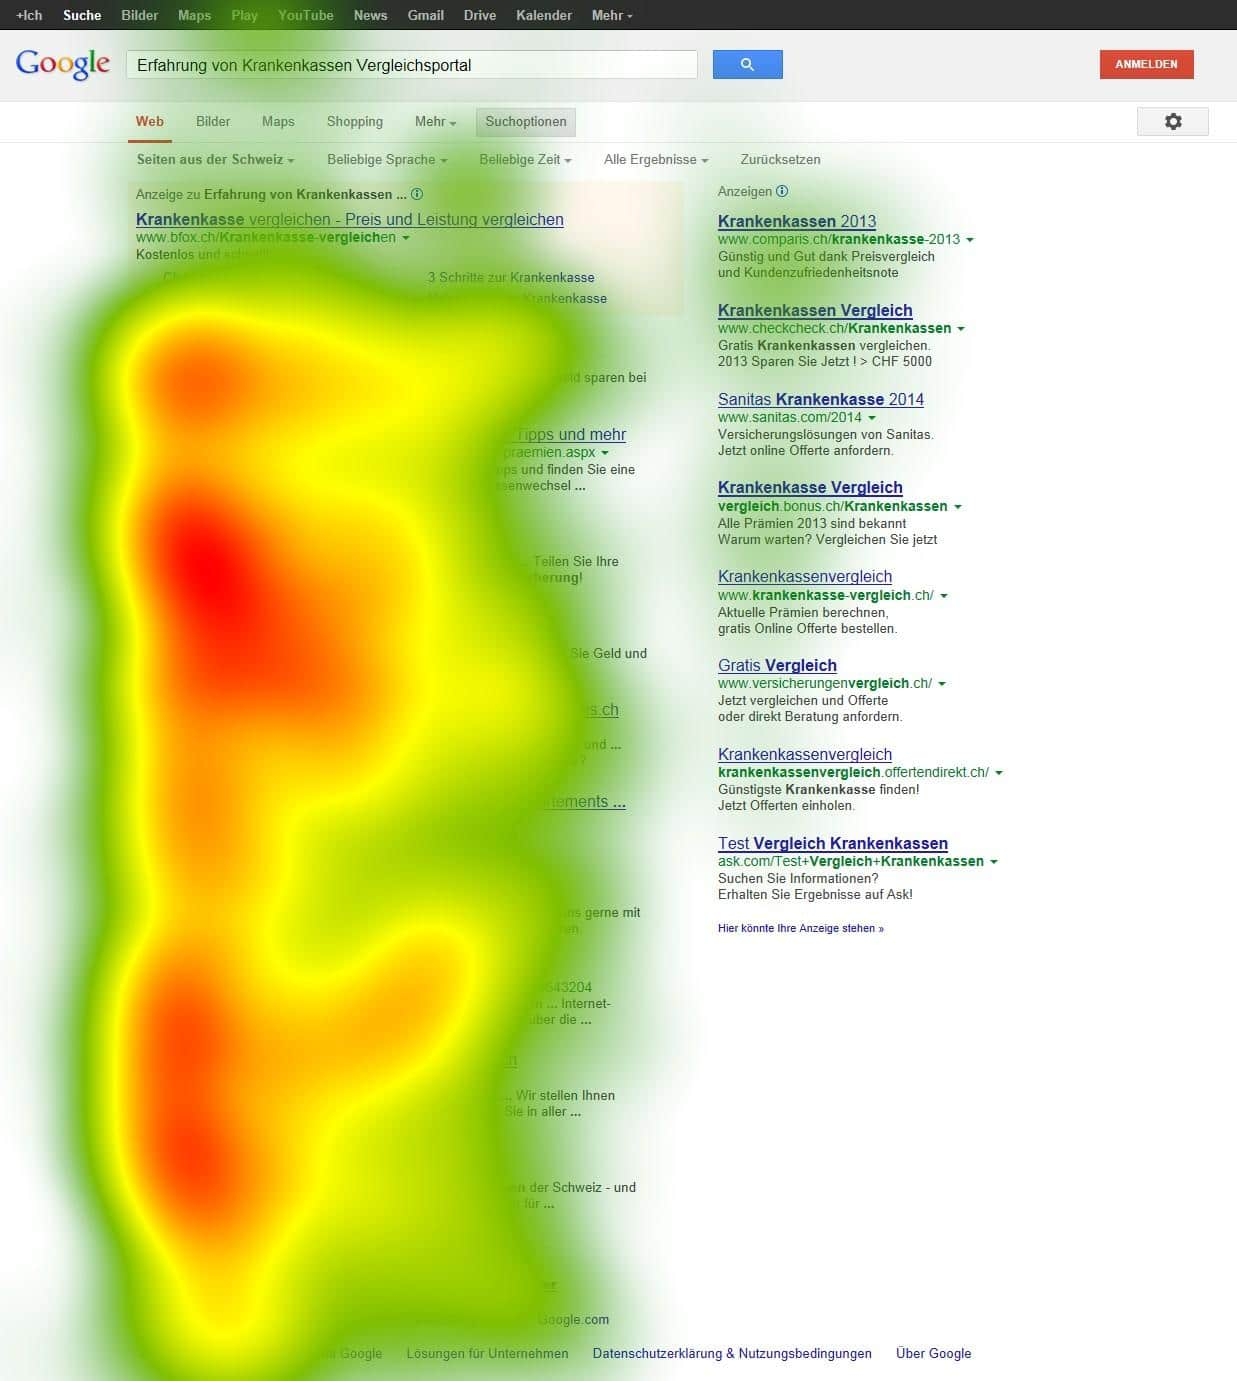 Heatmap analysis